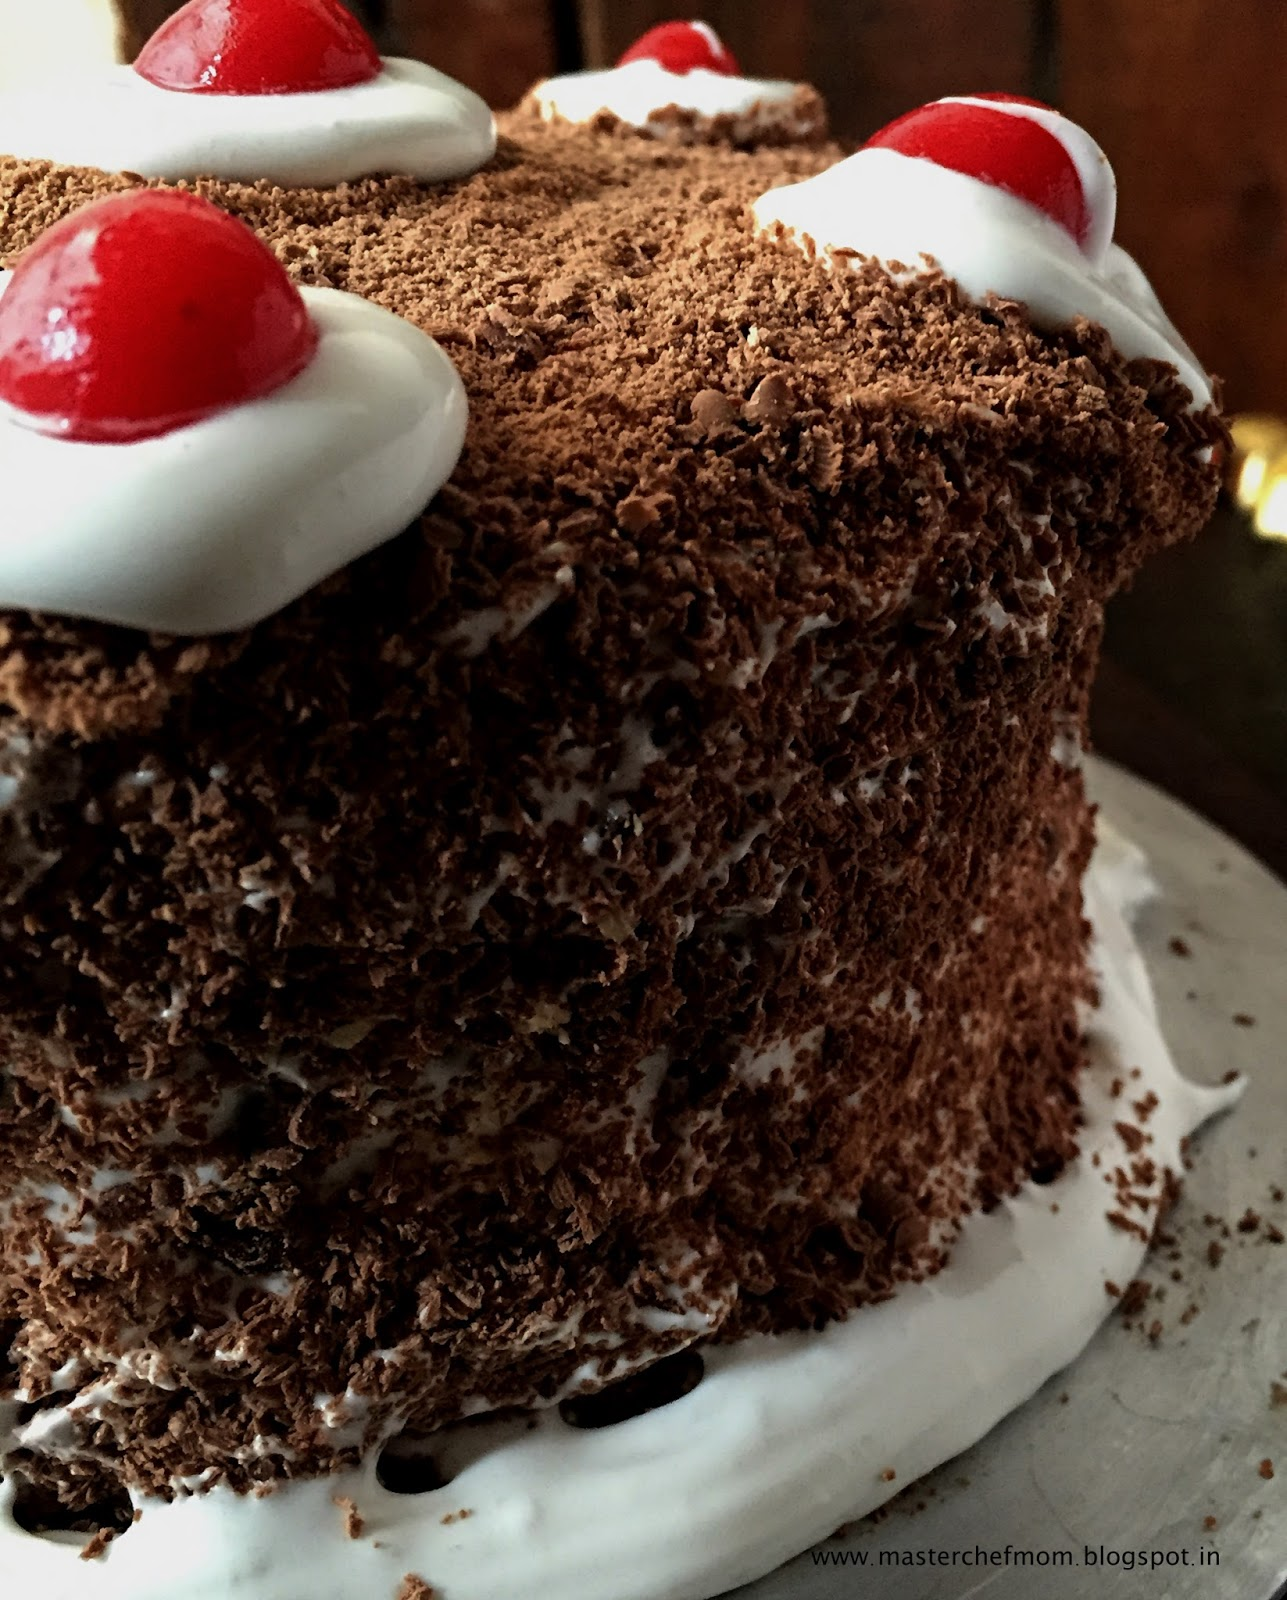 Cake Black Forest How To Make : MASTERCHEFMOM: Black Forest Cake ( Eggless) How to make ...